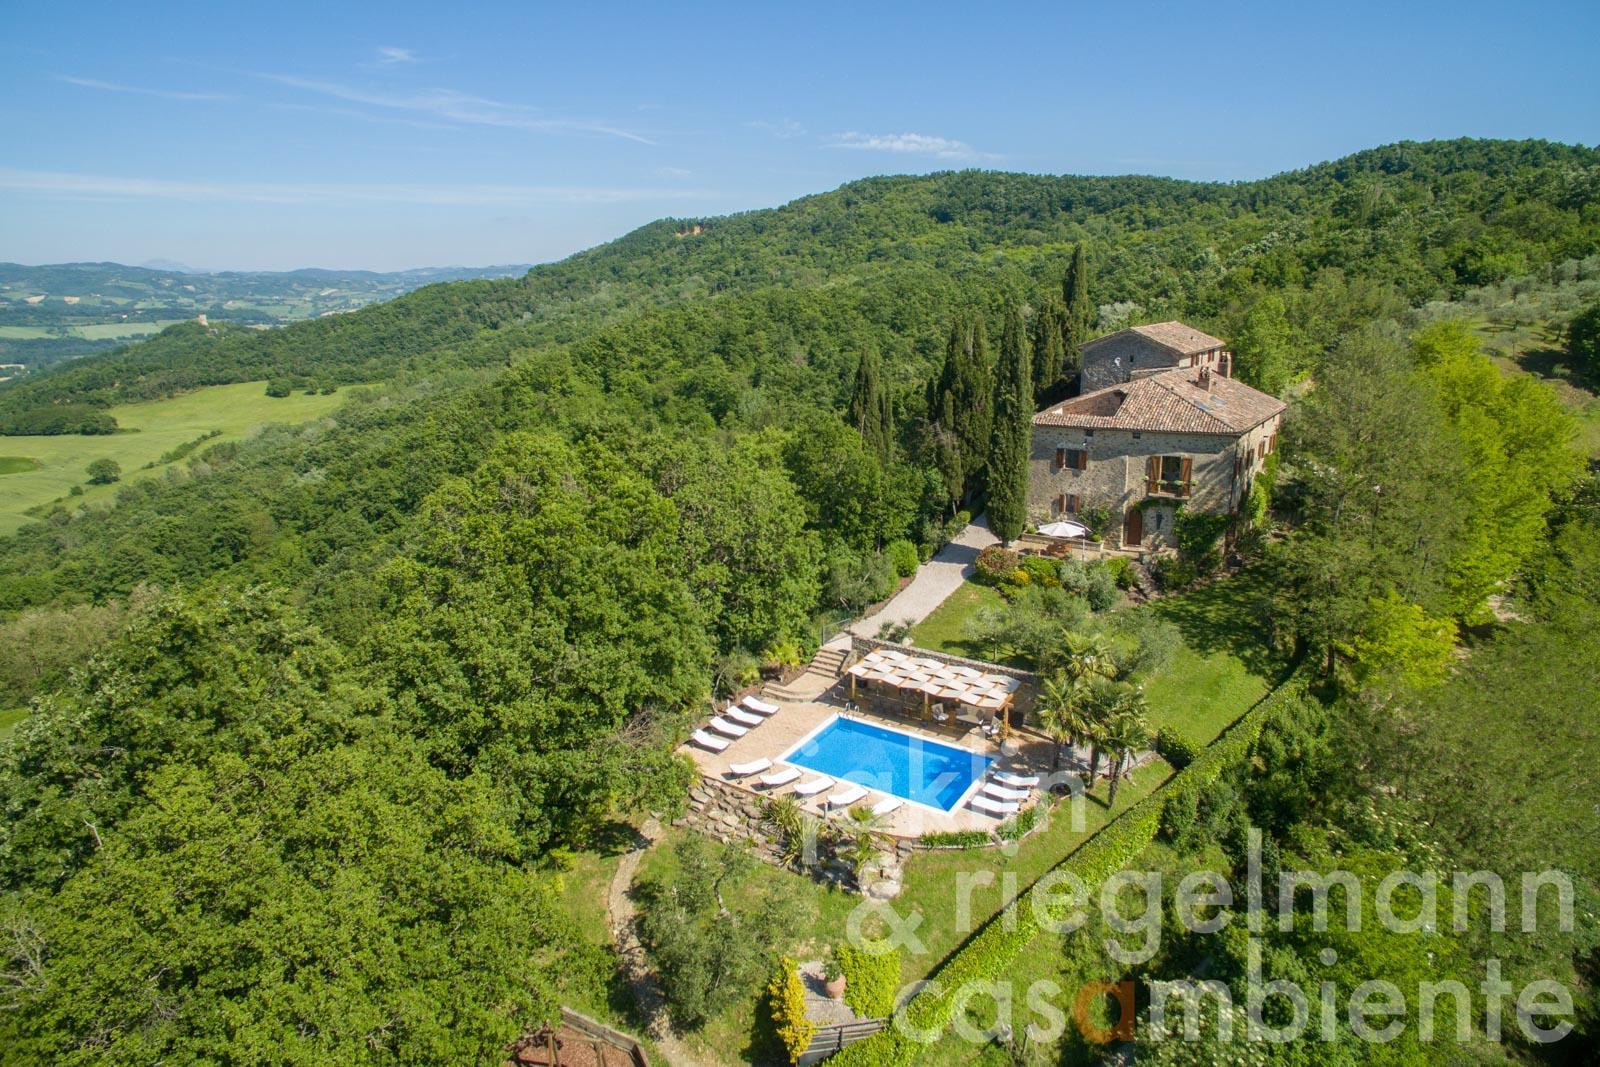 Impressive property with magnificent views overlooking the Tiber Valley and the hilltop town of Montone in Umbria